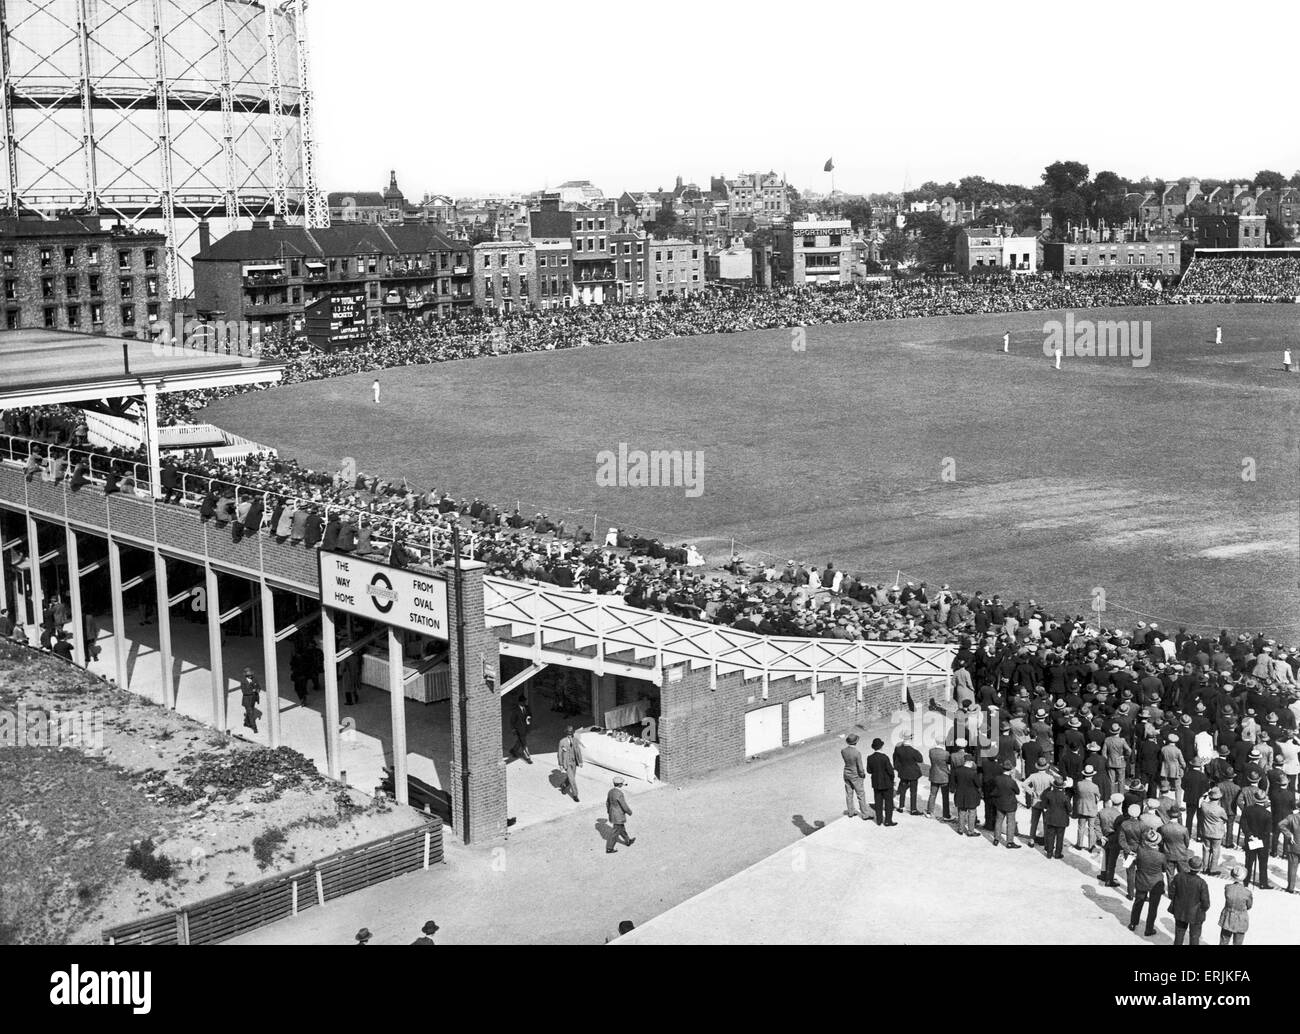 General view of the Oval cricket ground. August 1947. - Stock Image